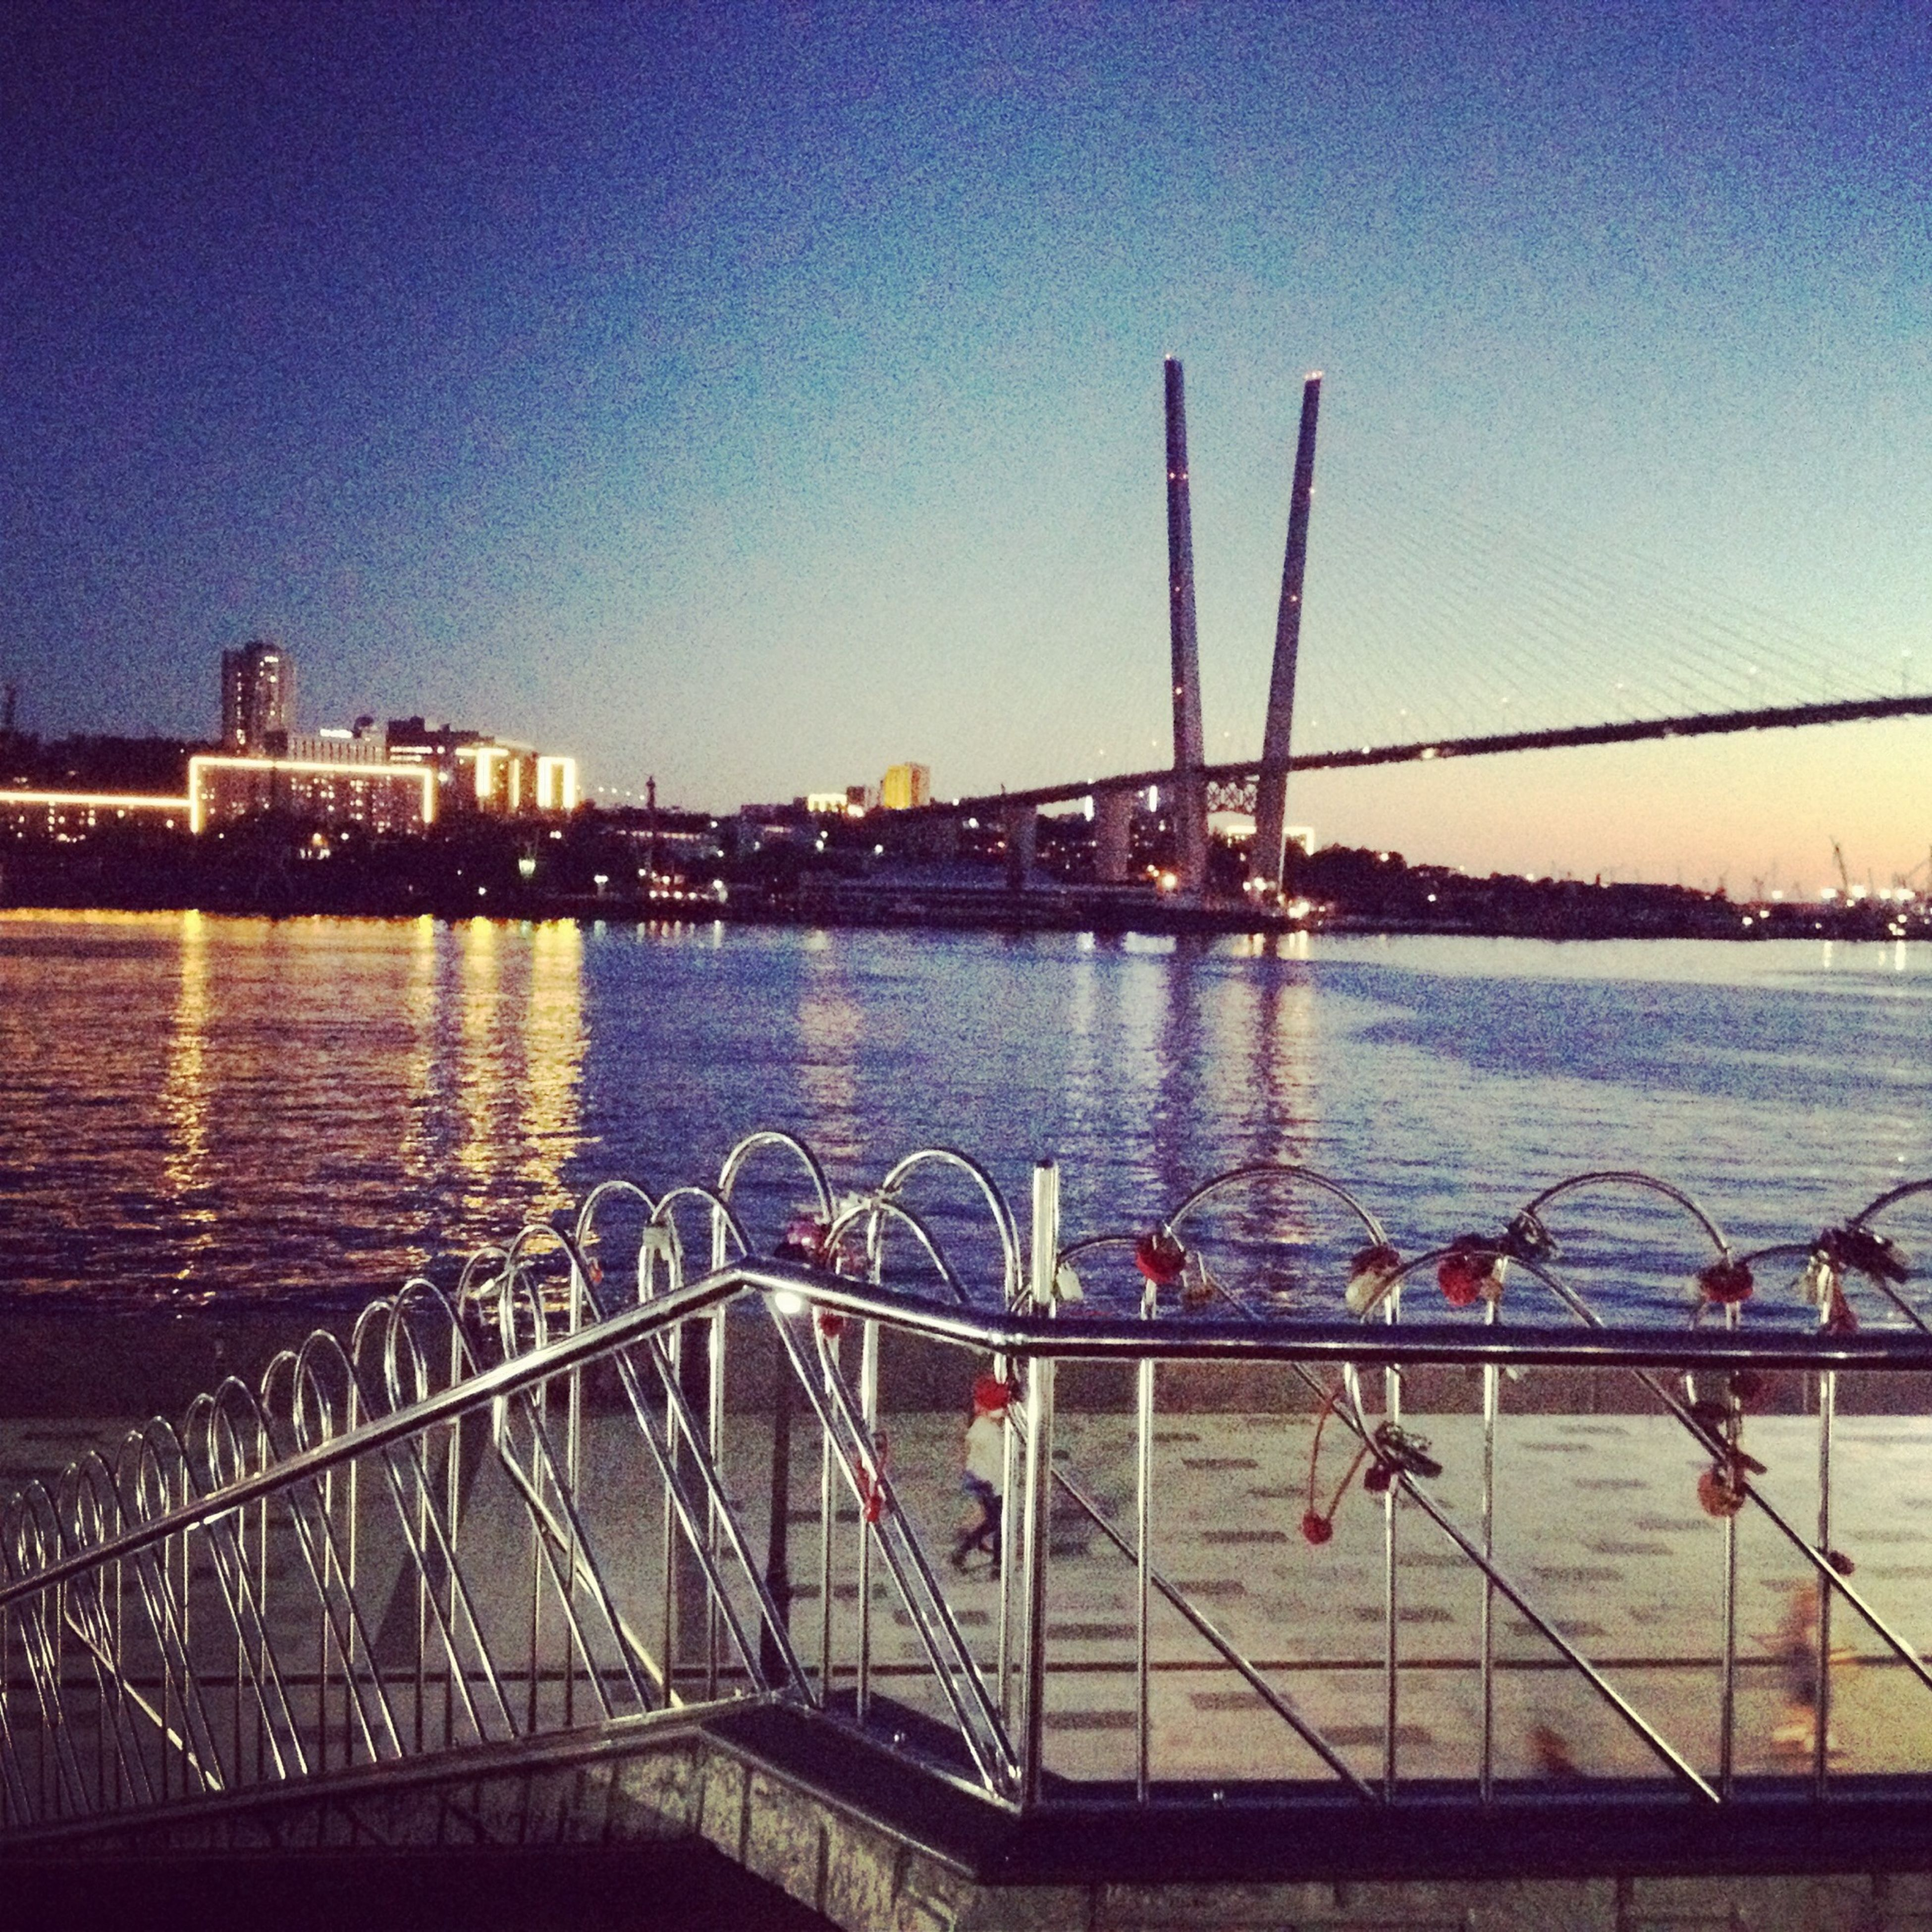 water, built structure, architecture, transportation, bridge - man made structure, river, clear sky, connection, illuminated, city, suspension bridge, nautical vessel, engineering, bridge, building exterior, blue, waterfront, sky, sea, travel destinations